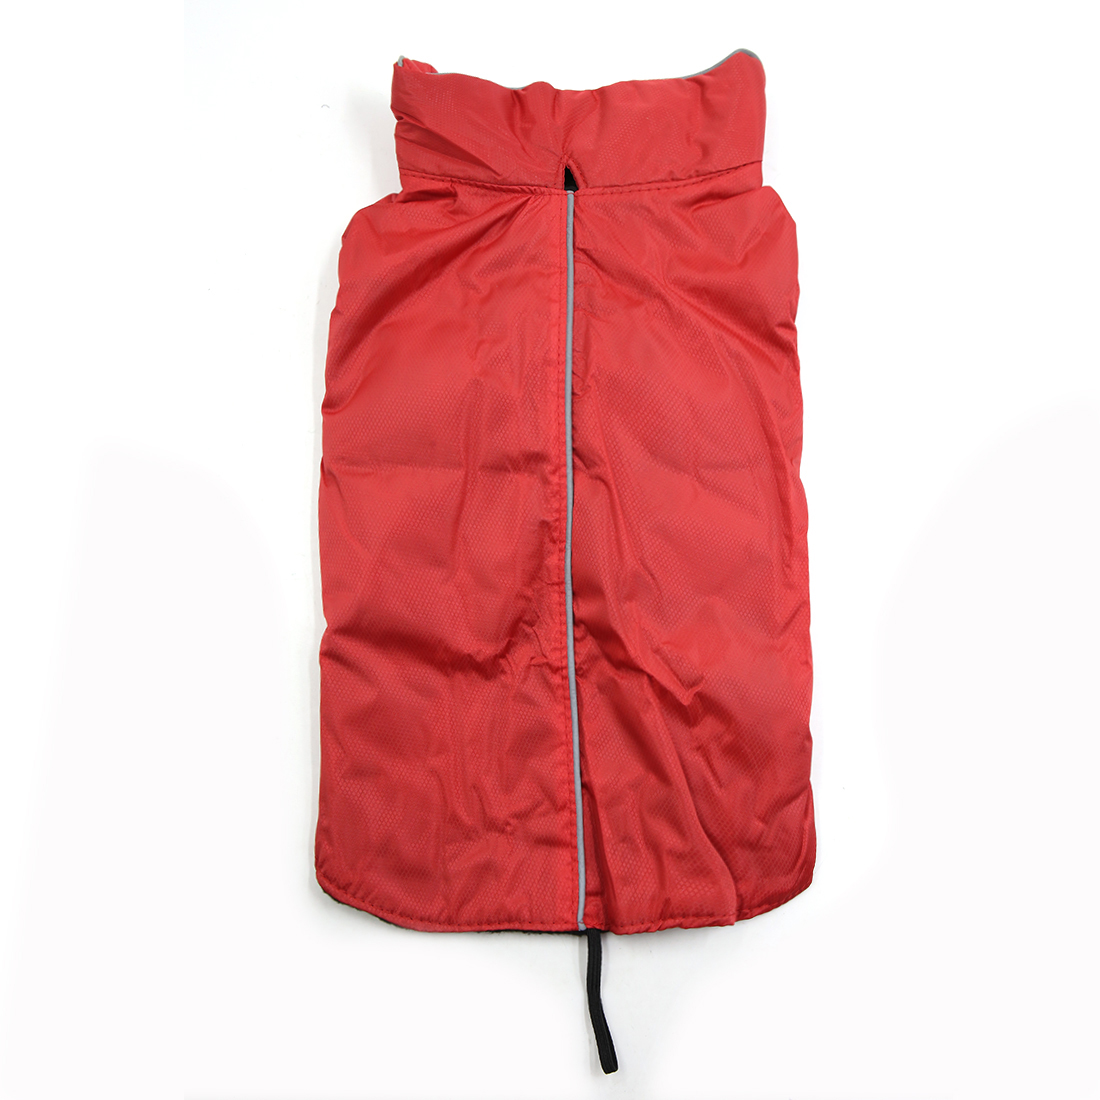 Reflective Vest Jacket Clothes Soft Warm Fleece Lining Dog Coat Clothing Red L